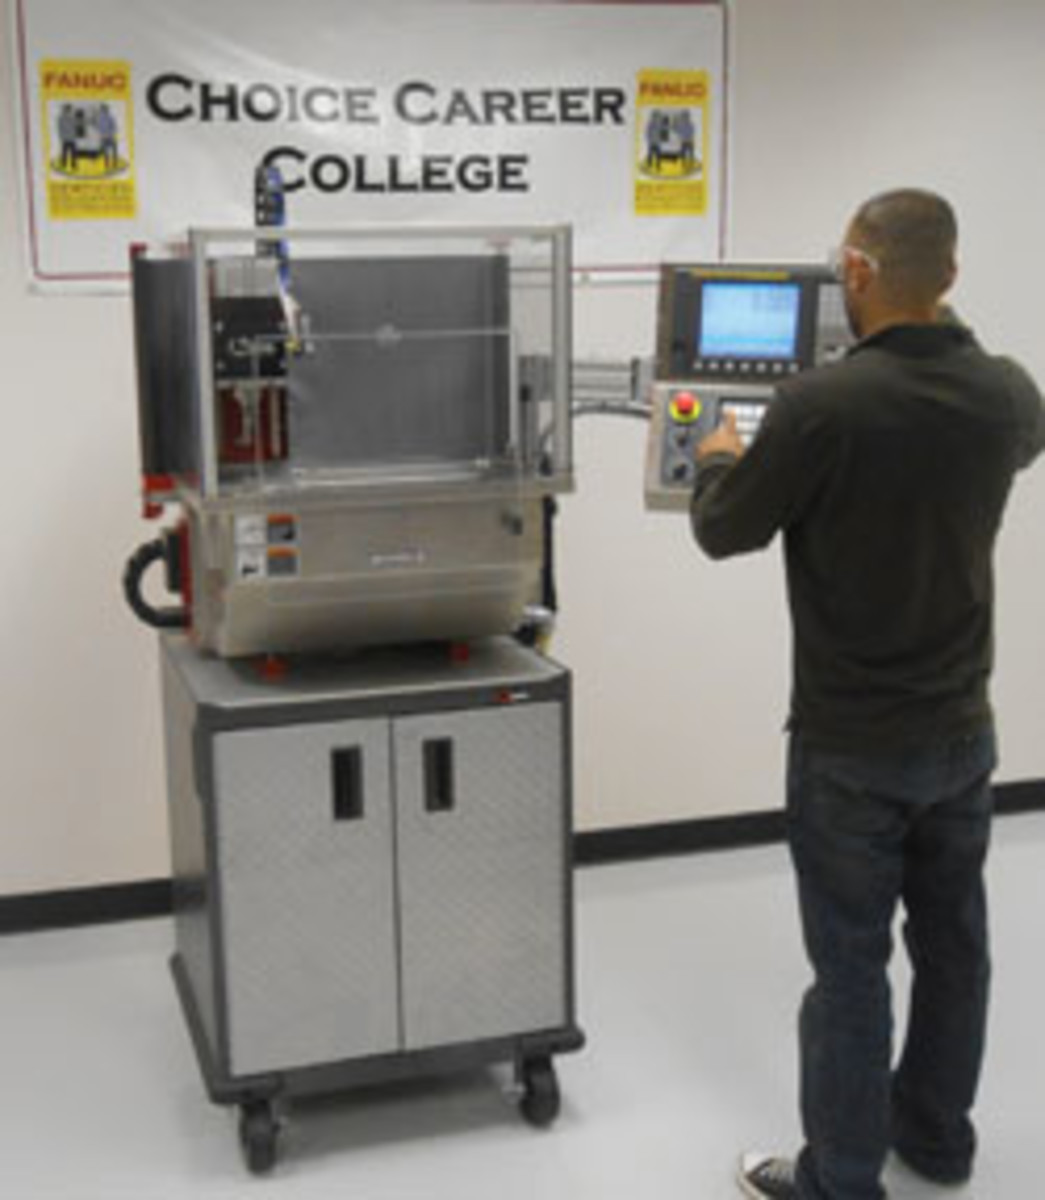 Fanuc is addressing the industry need for skilled workers at Choice Career College with its Certified CNC Training program.